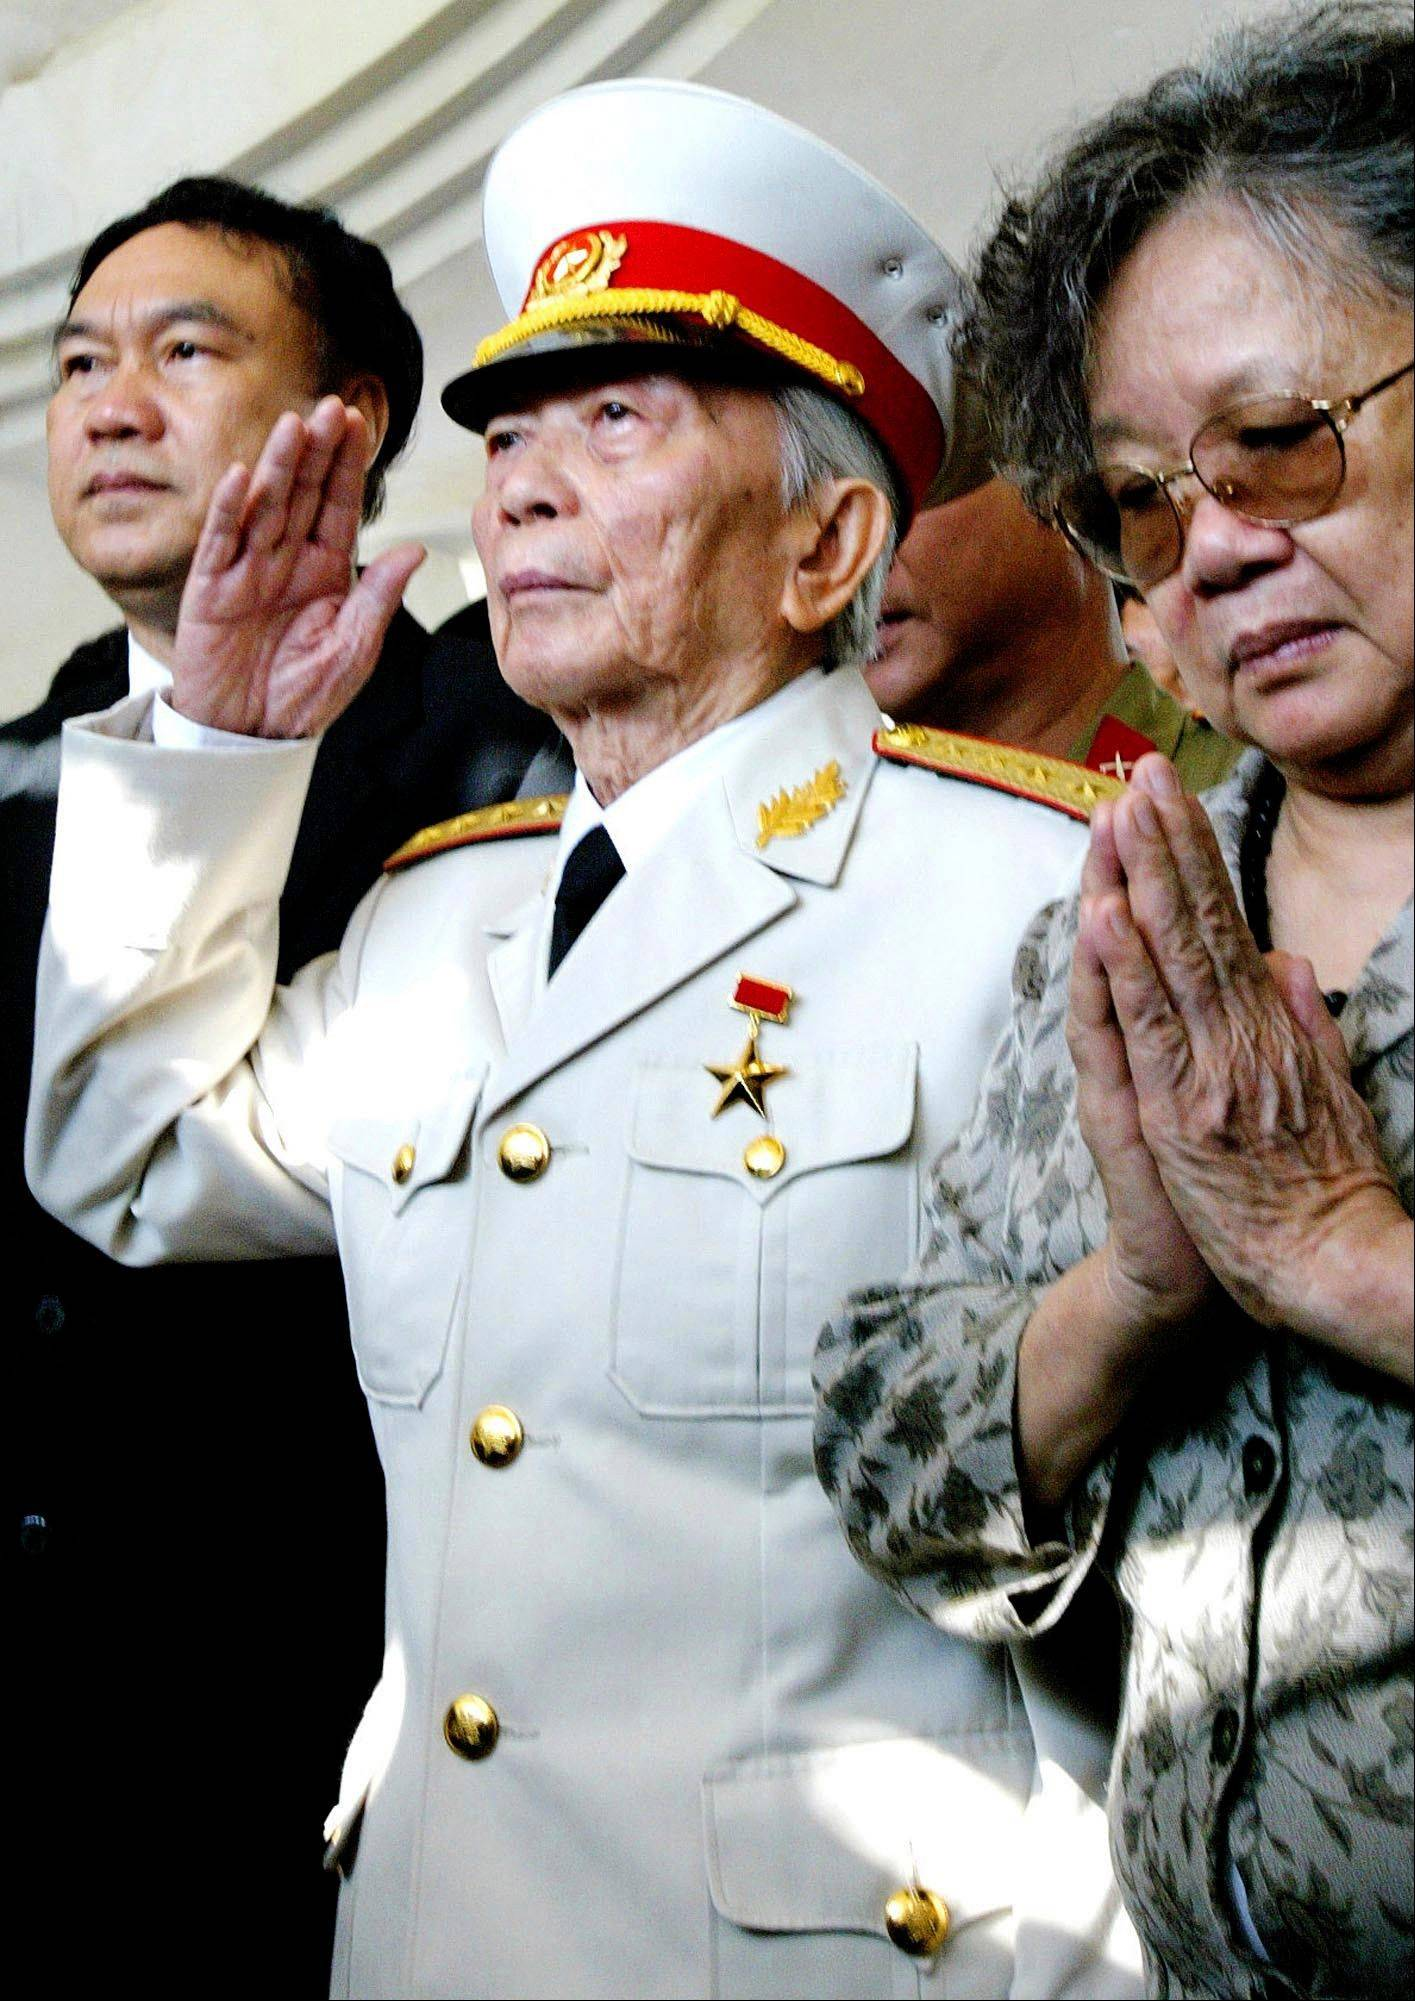 Gen. Vo Nguyen Giap salutes his fallen comrades at a shrine of the Dien Bien Phu�s war cemetery in 2004. Officials say legendary Gen. Giap, the military mastermind who drove the French and the Americans out of Vietnam, died at a Hanoi hospital Friday, Oct. 4, 2013, at age 102. He was the country�s last famous communist revolutionary, and used ingenious guerrilla tactics to overcome enormous odds against superior forces.